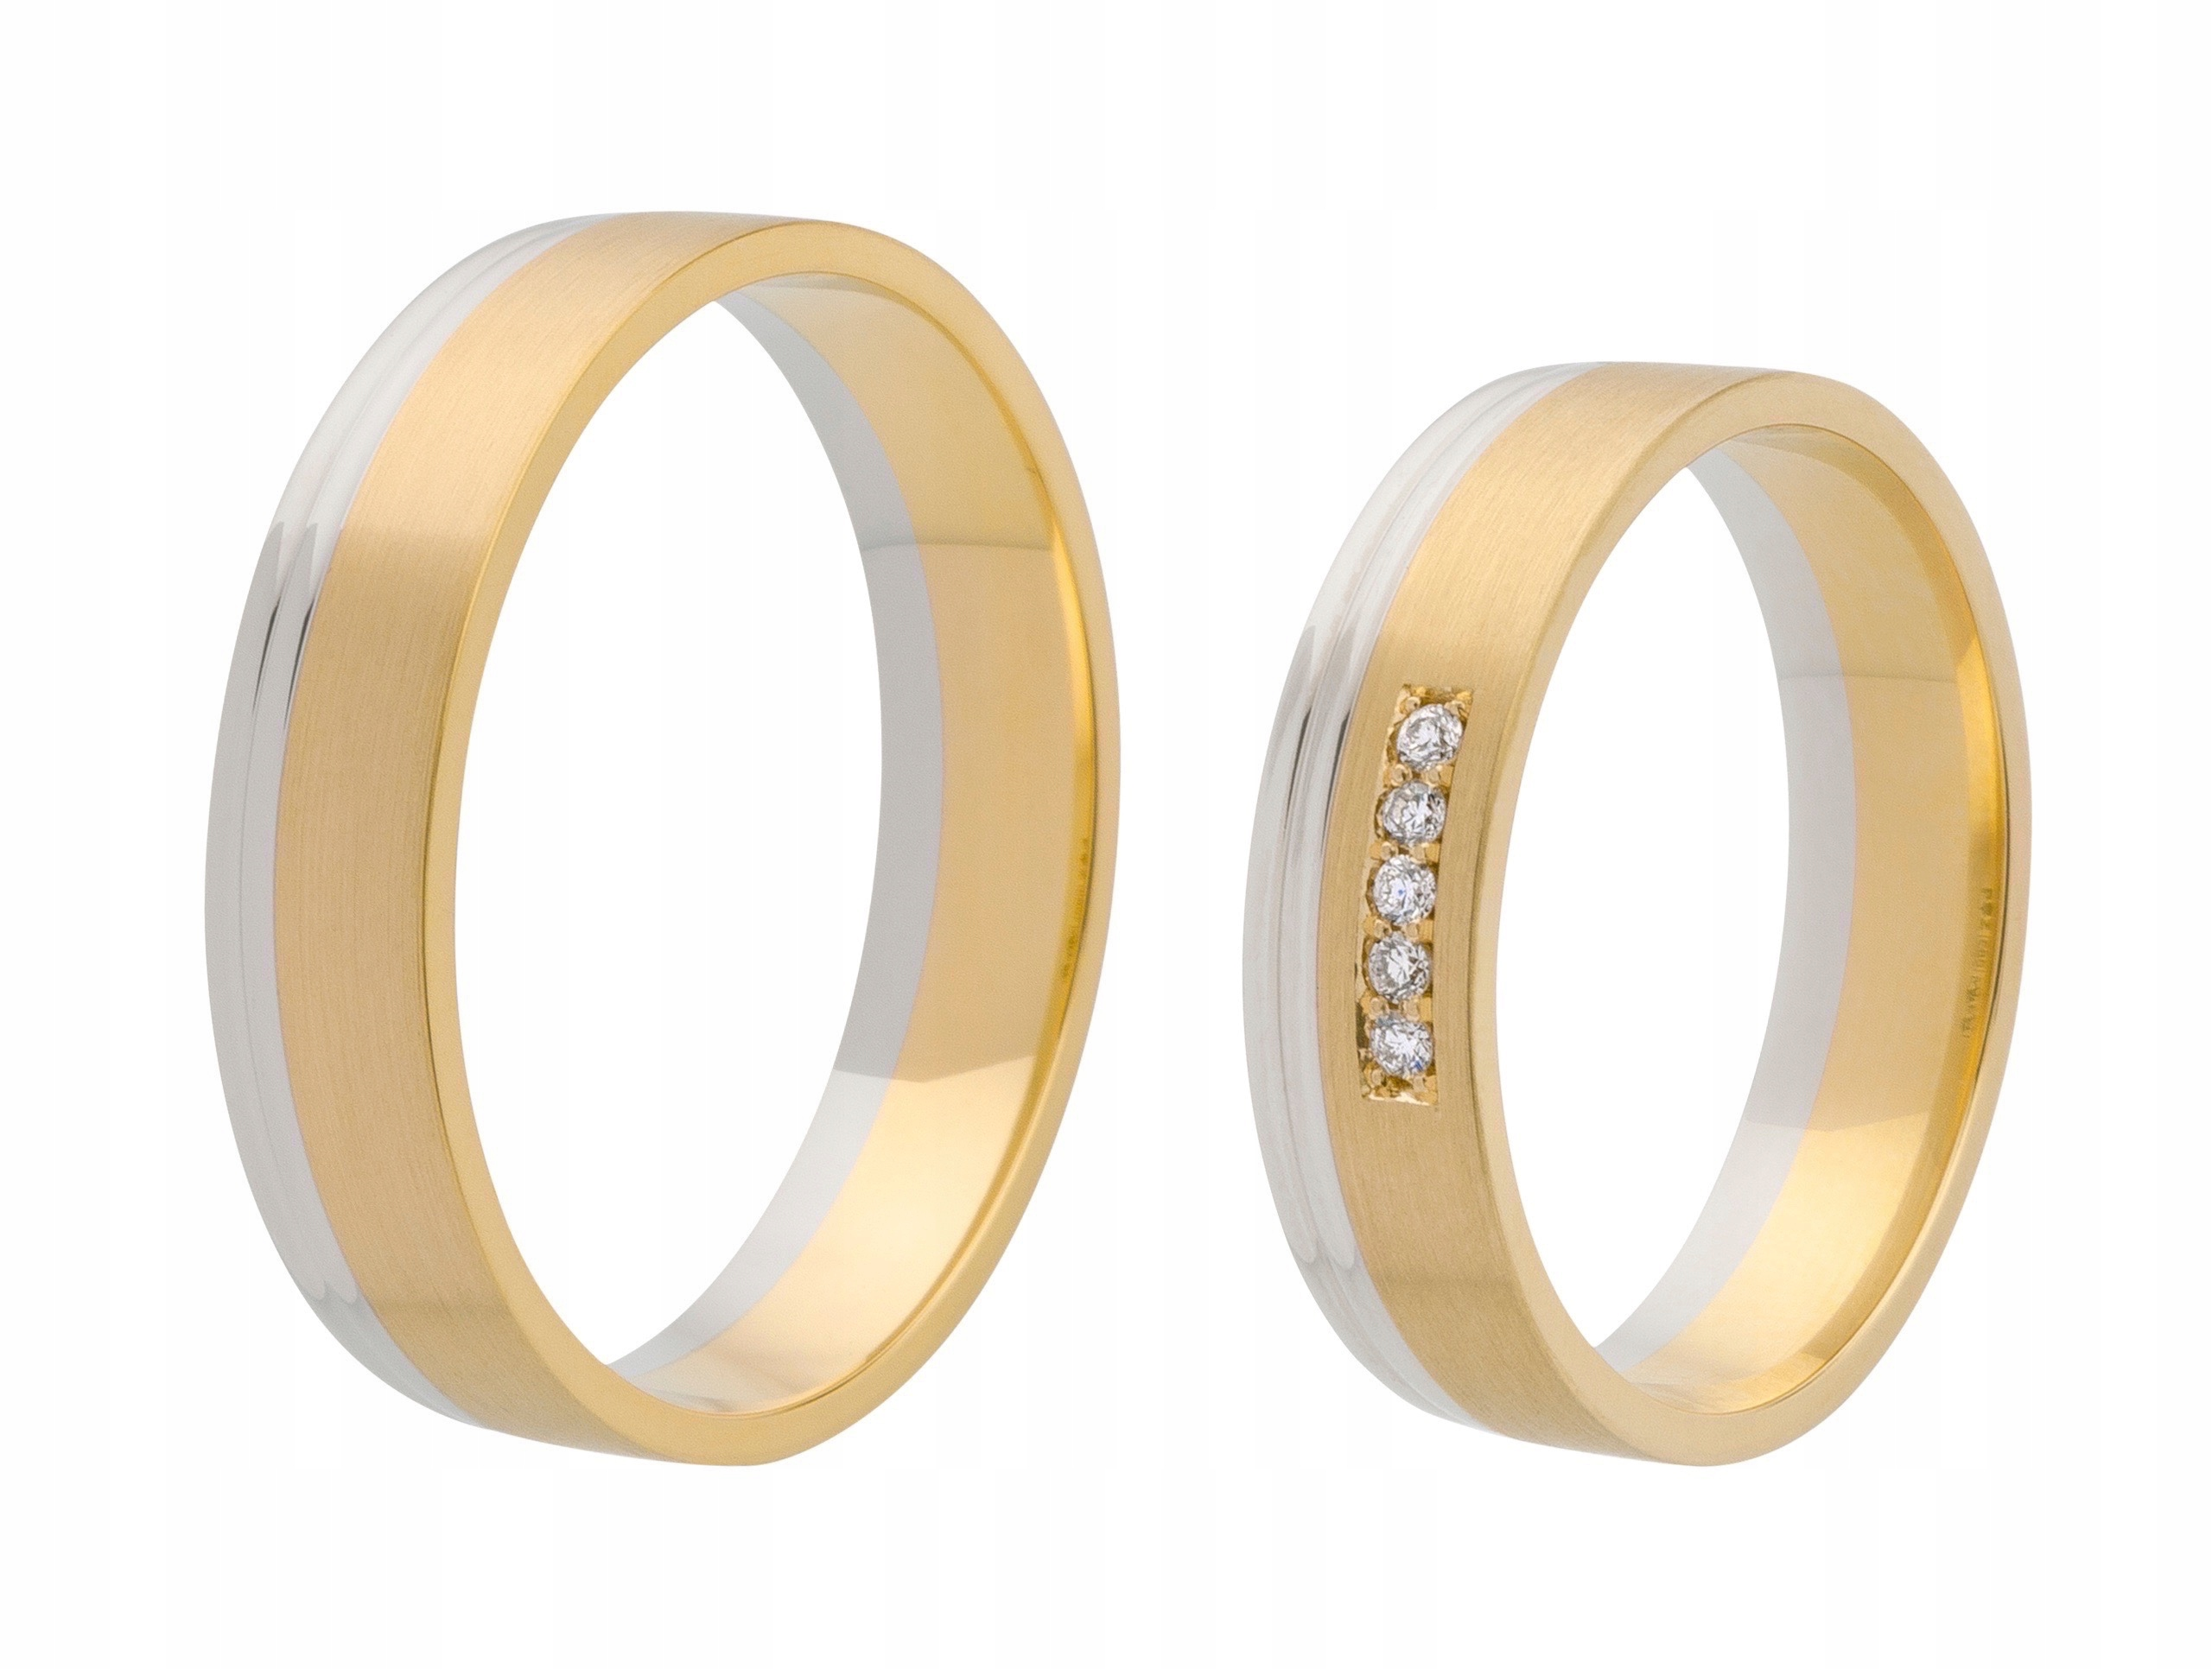 Item Two tone GOLD wedding RING with 5 DIAMONDS